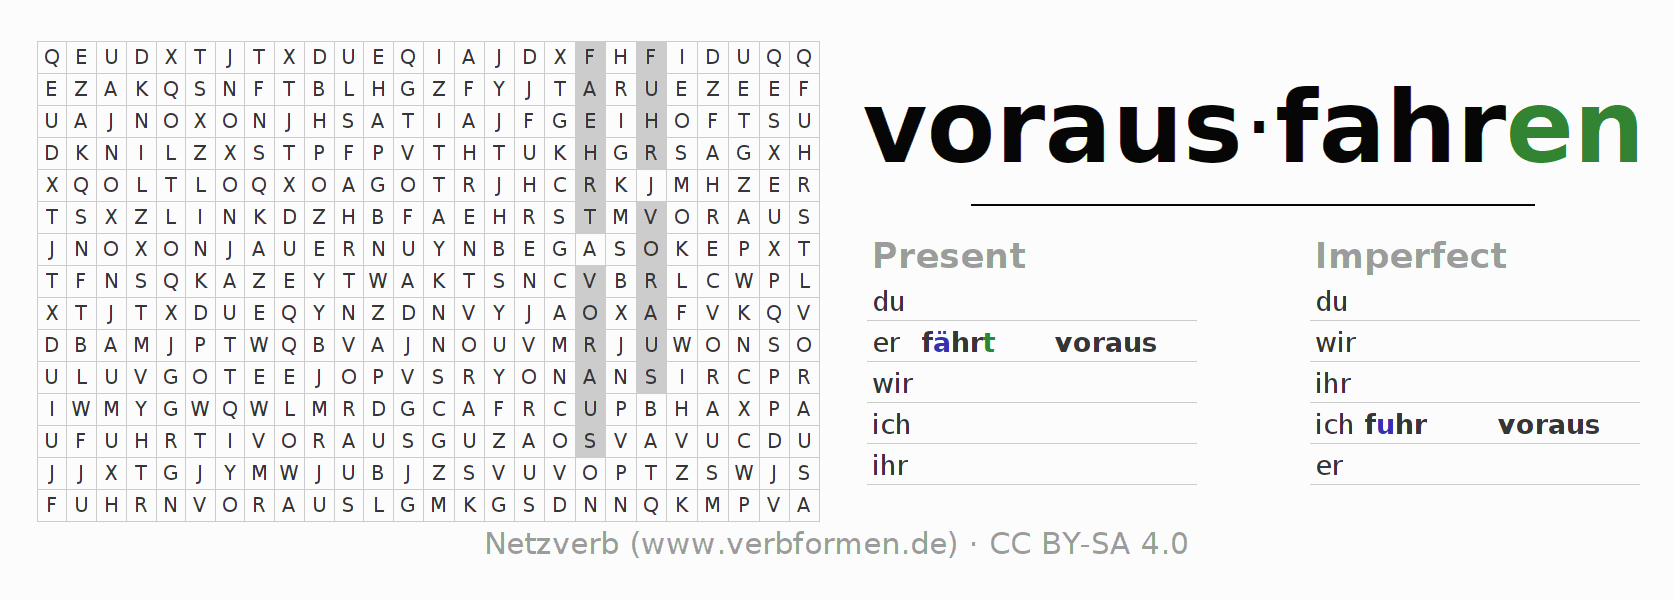 Word search puzzle for the conjugation of the verb vorausfahren